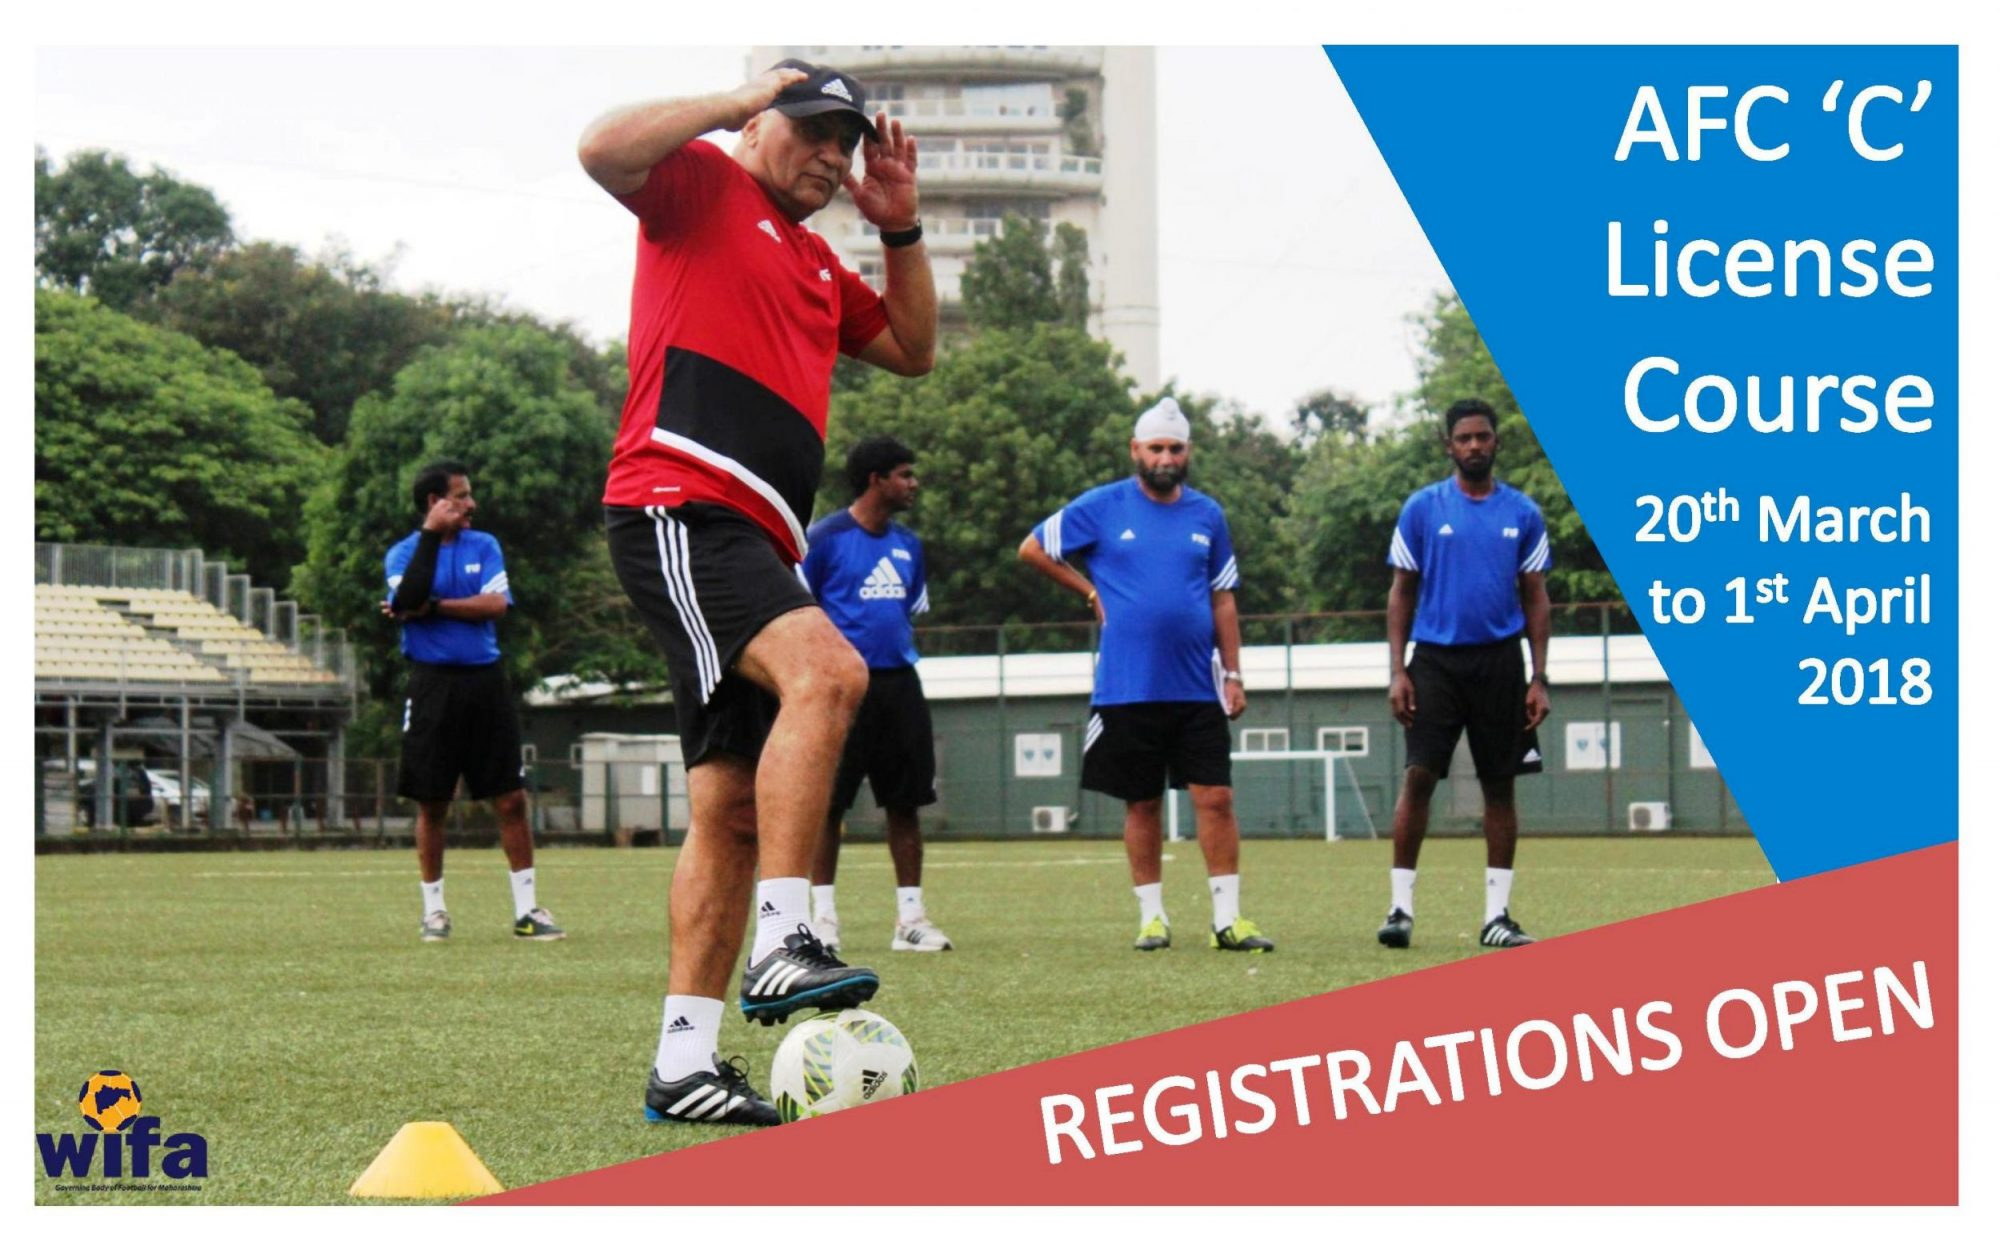 AFC C License, Maharashtra (20th March to 1st April 2018)